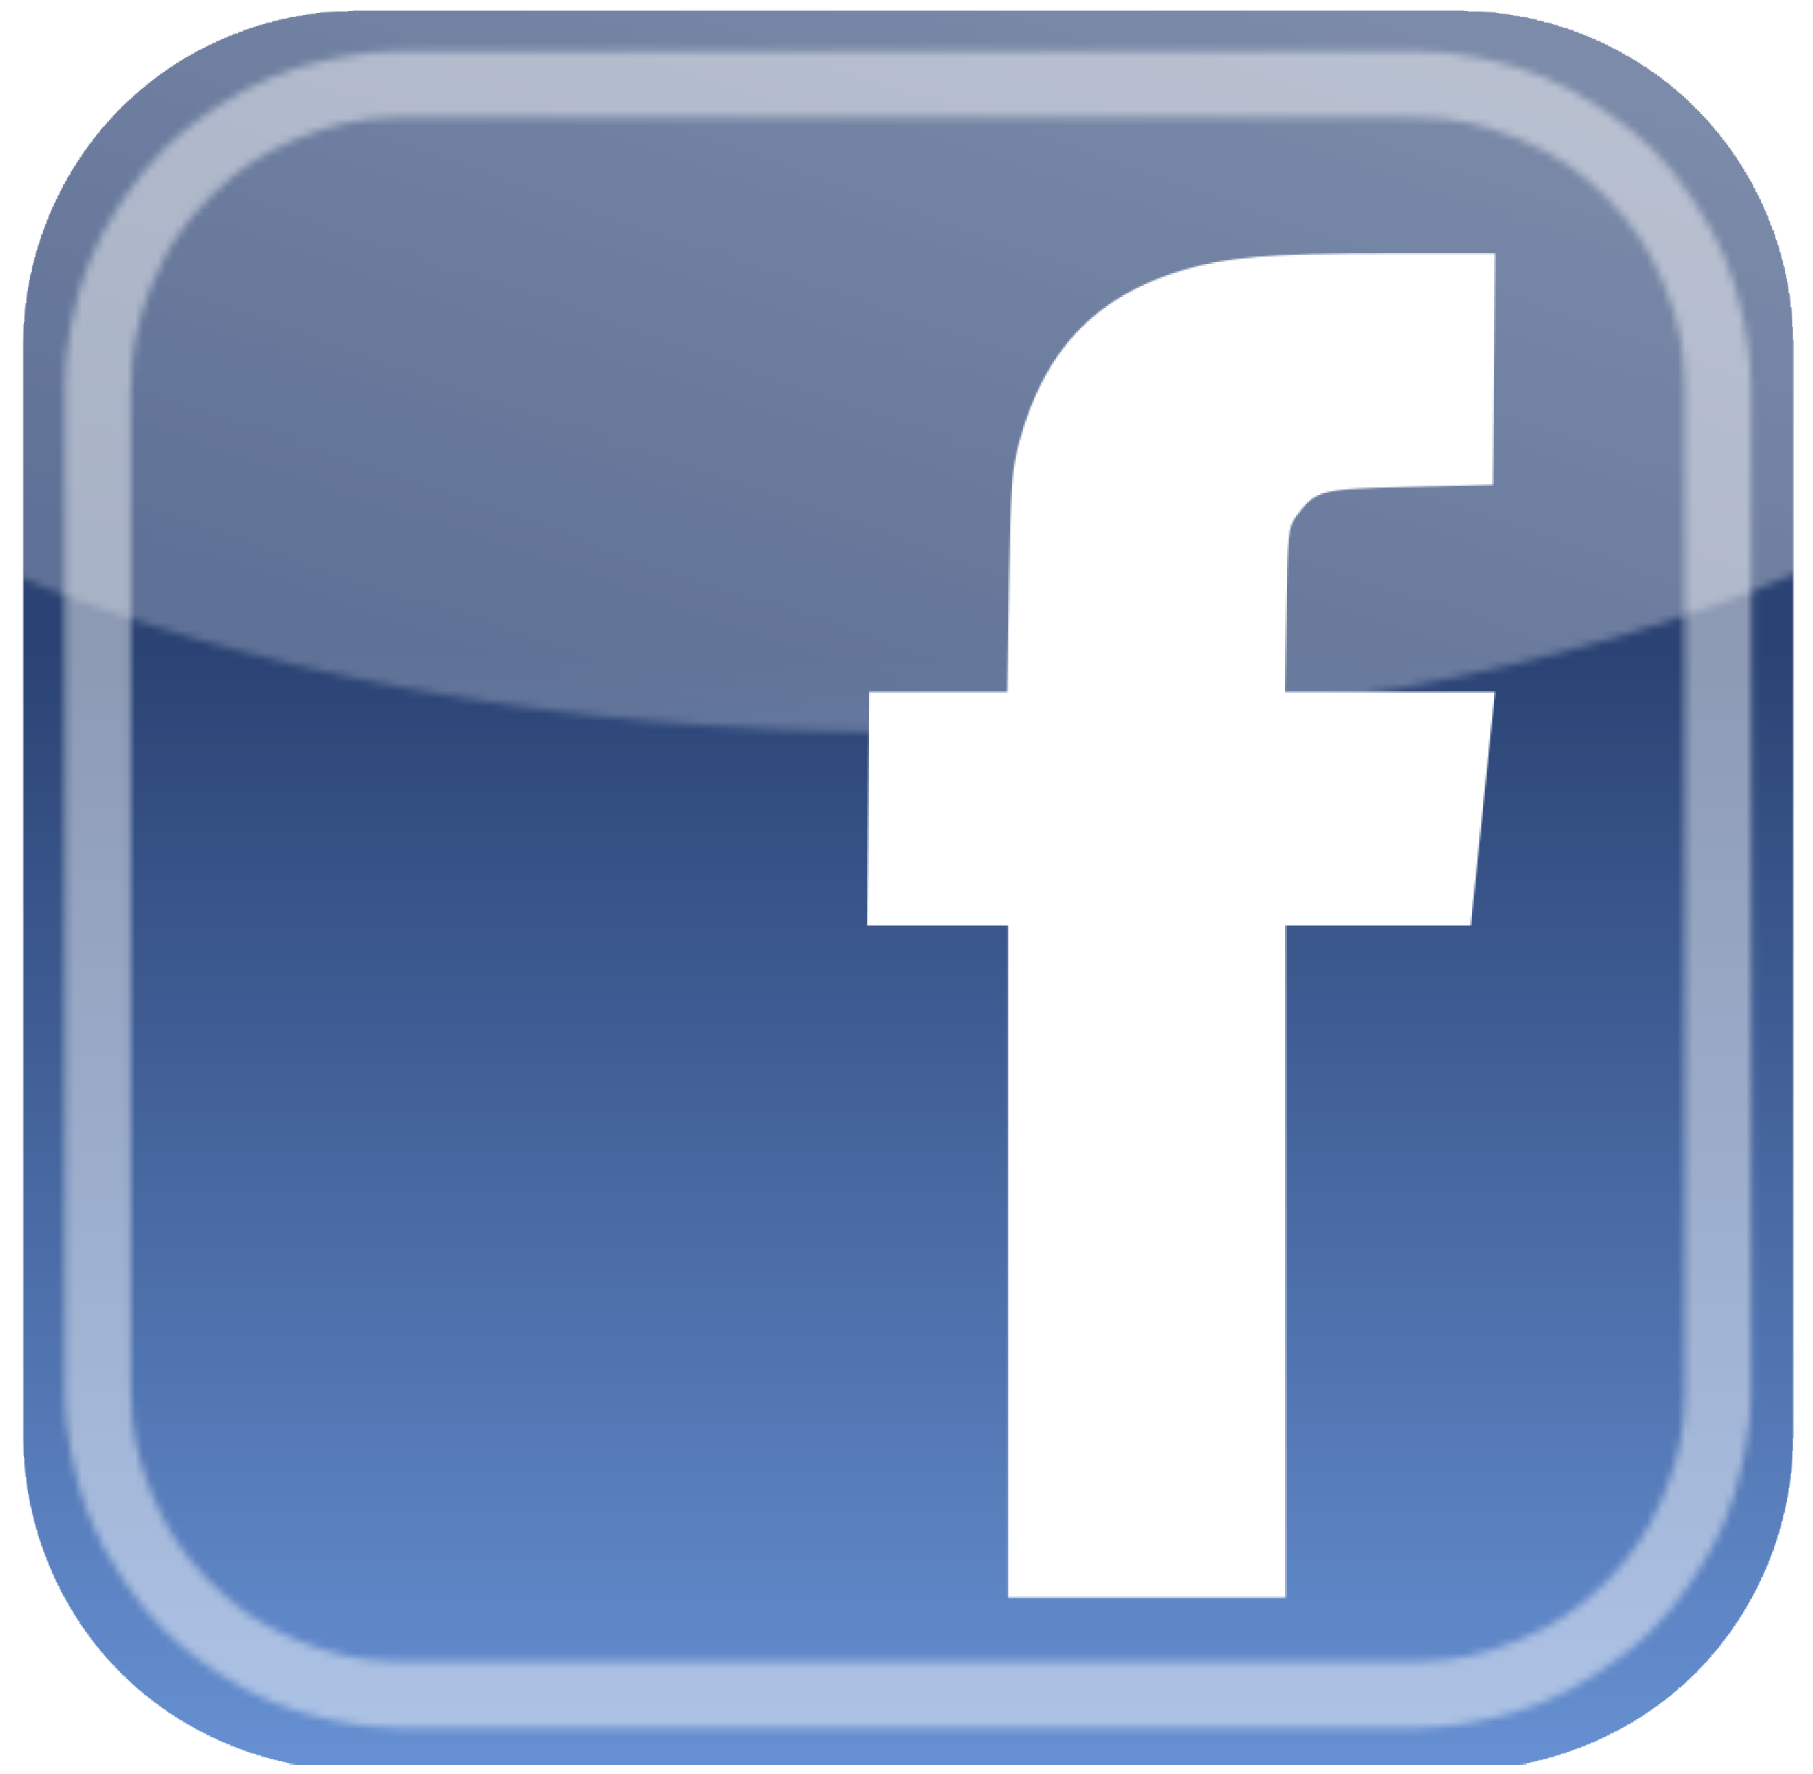 logo-facebook-hd-e1442305720786